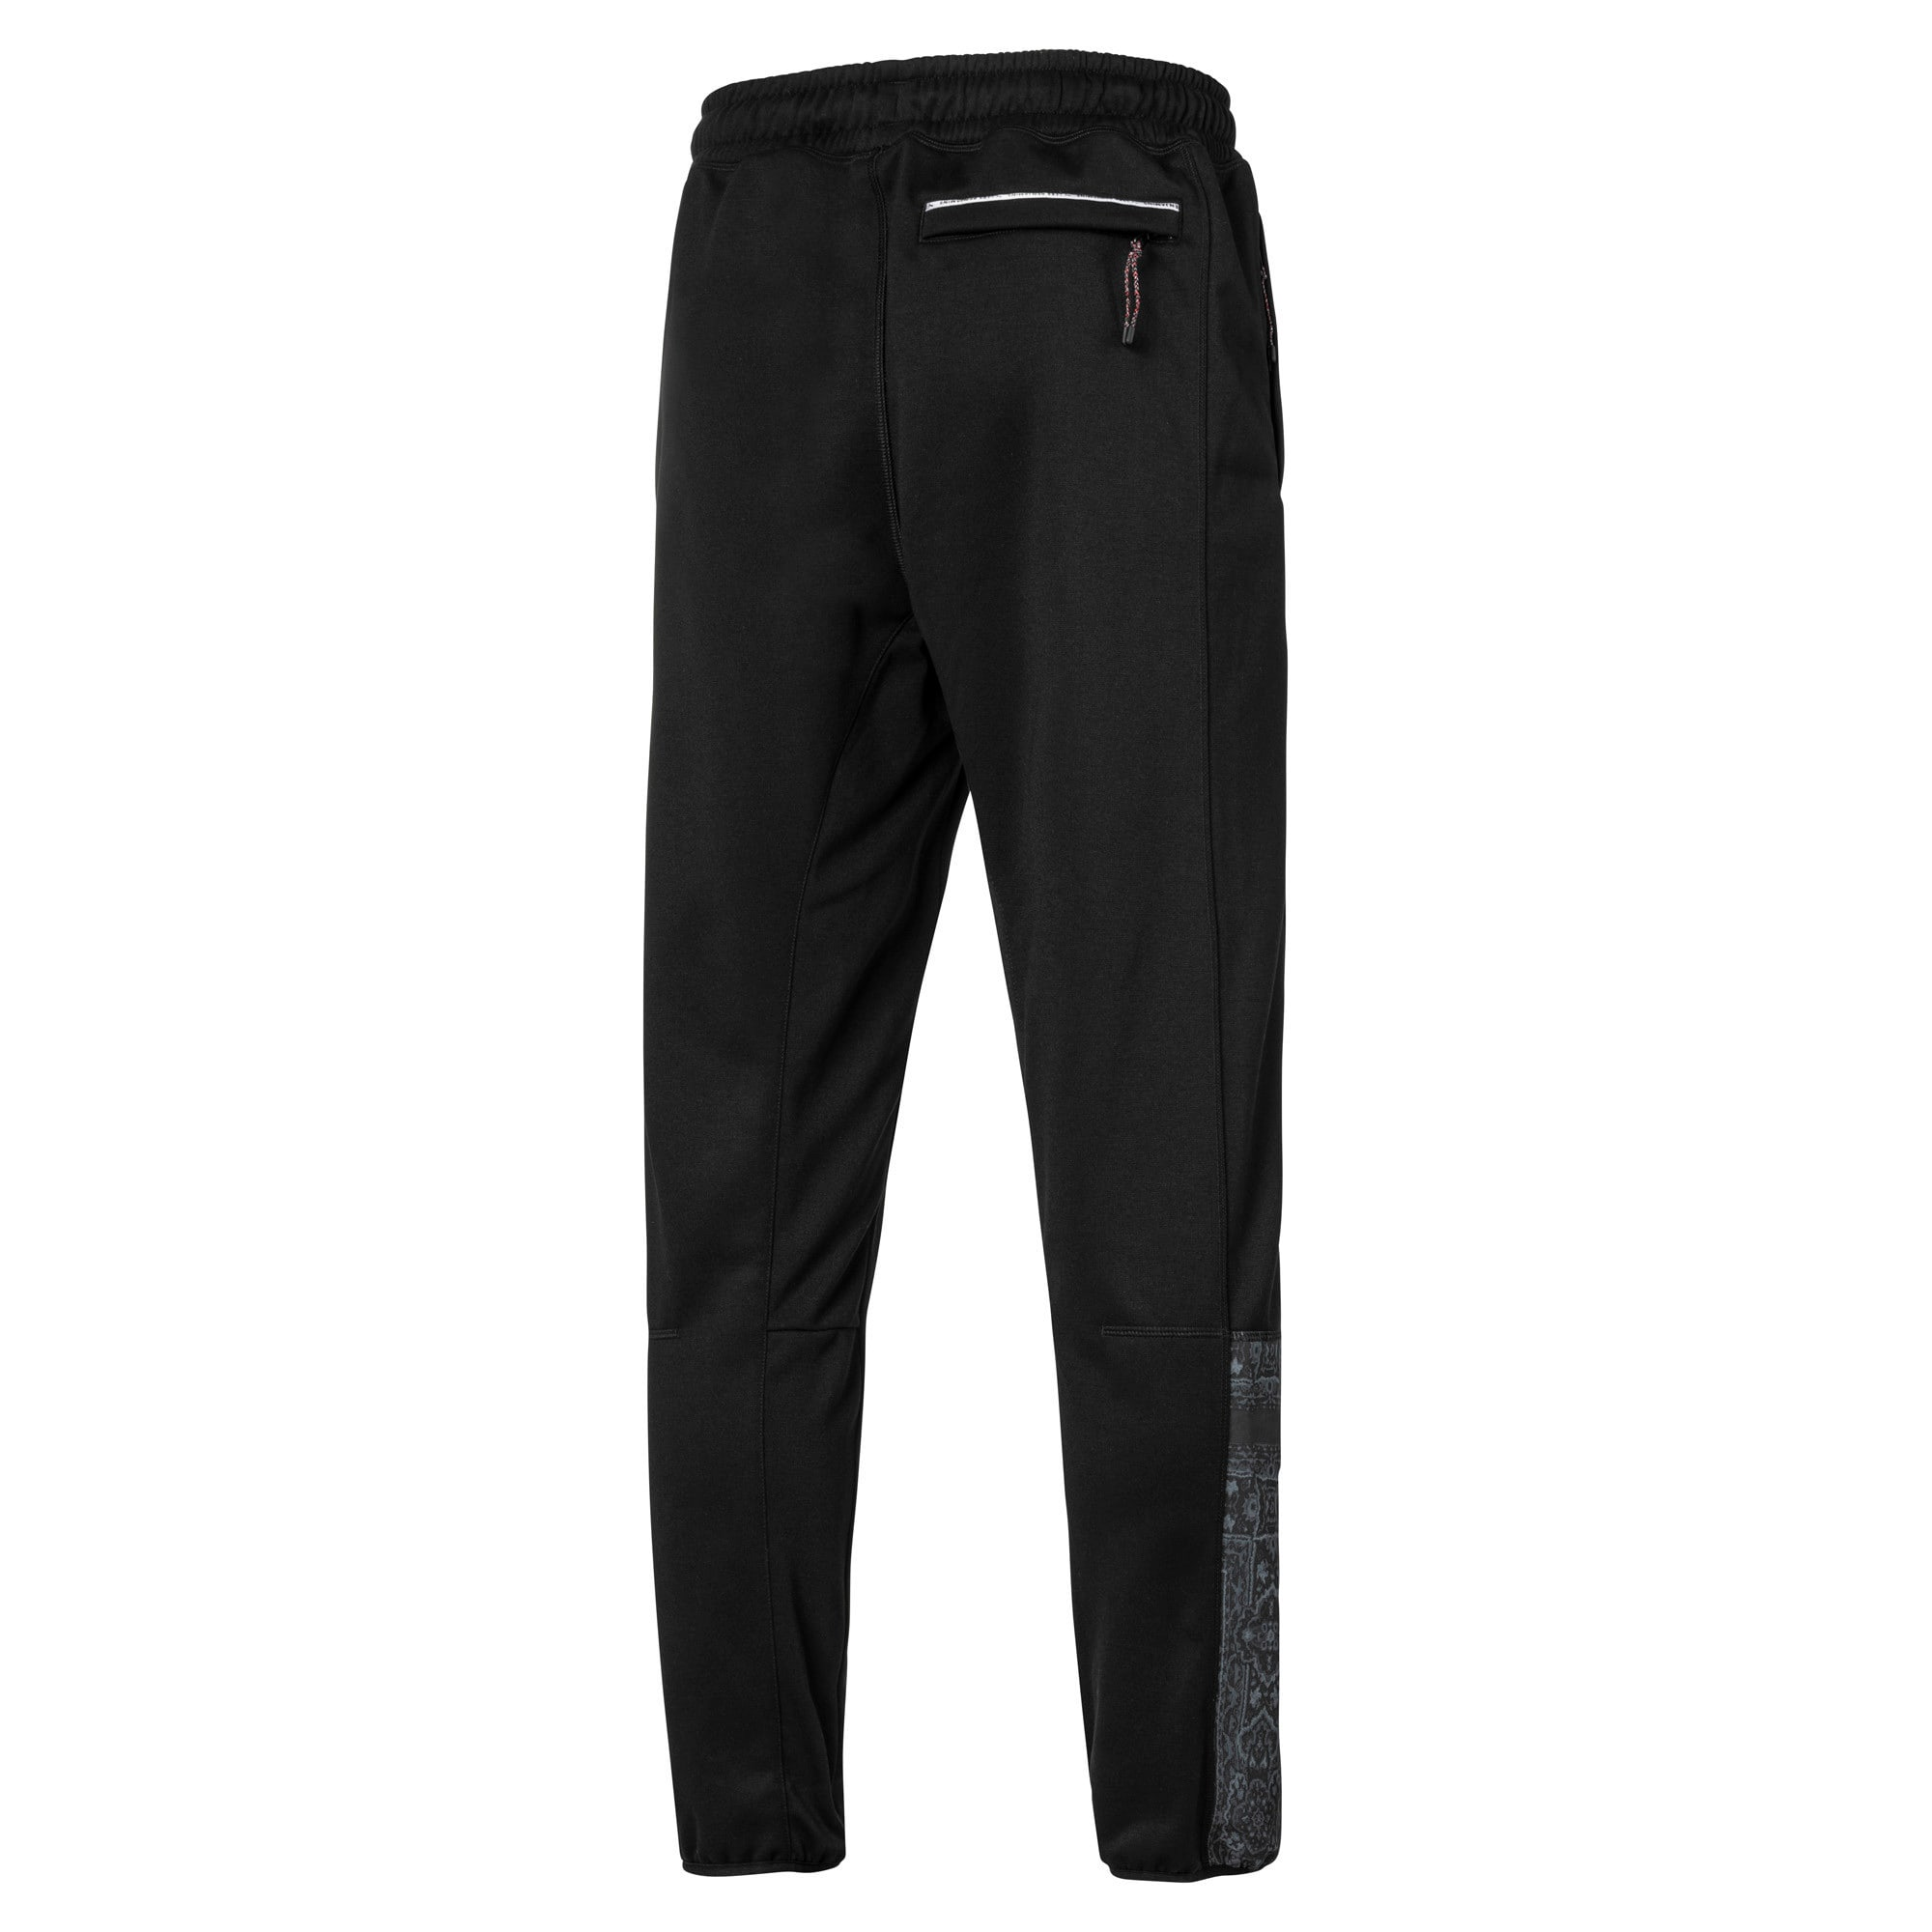 Thumbnail 5 of PUMA x LES BENJAMINS Woven Men's Track Pants, Puma Black, medium